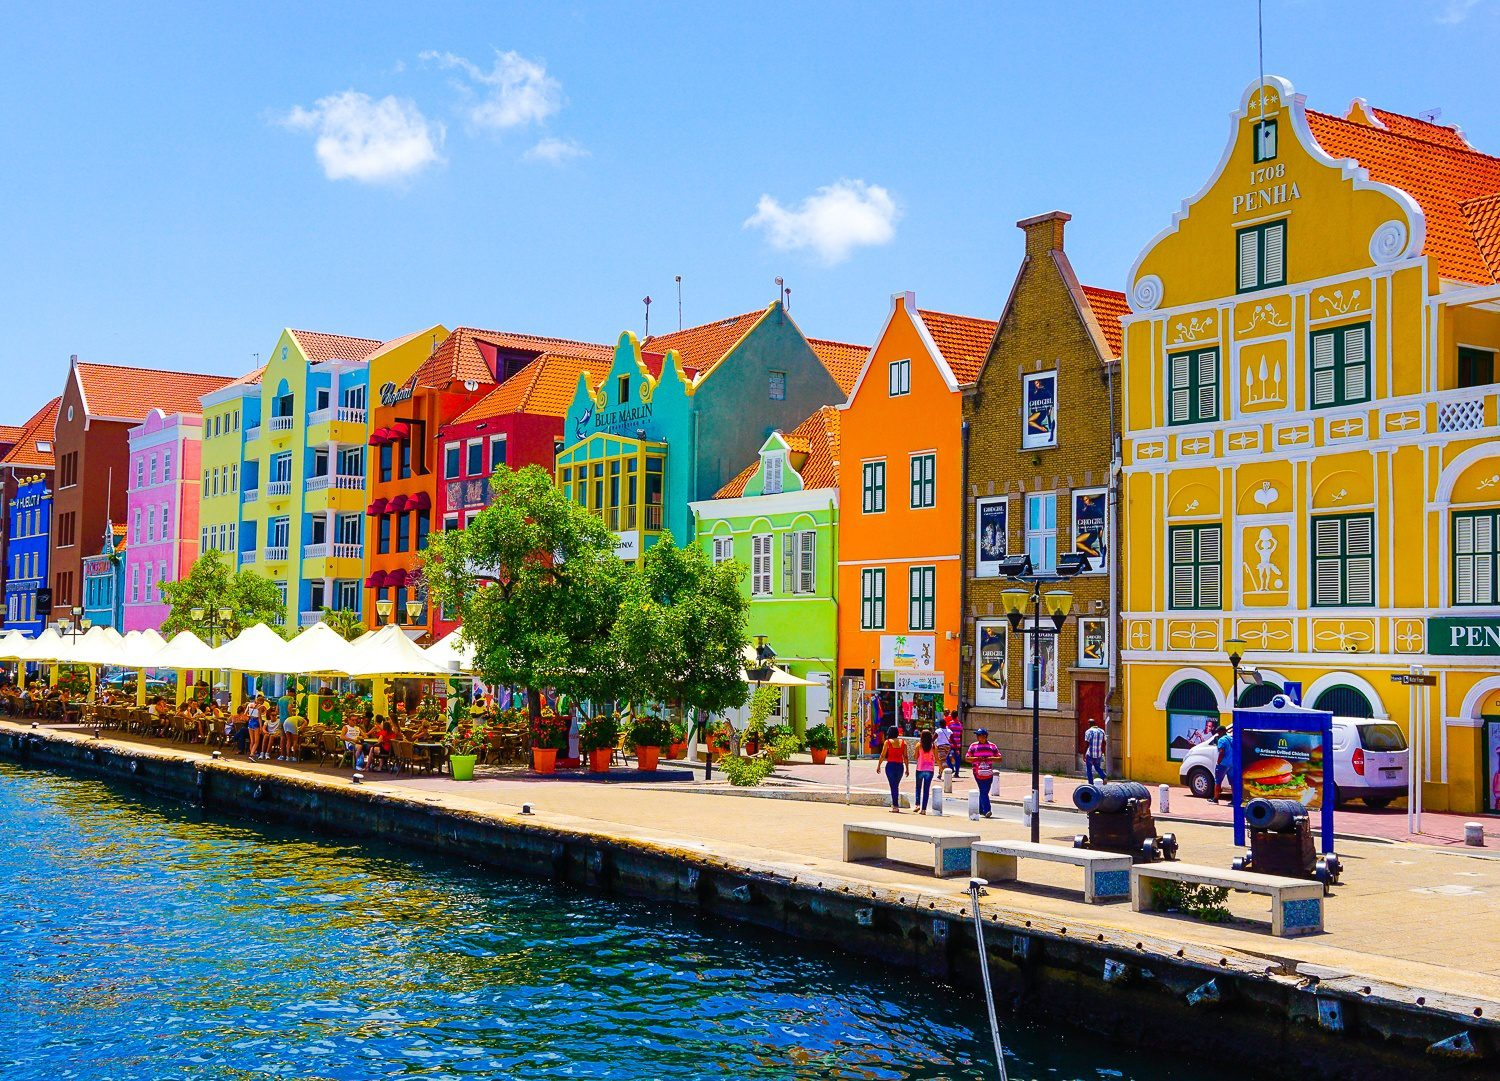 The architecture of Willemstad is THE BEST.